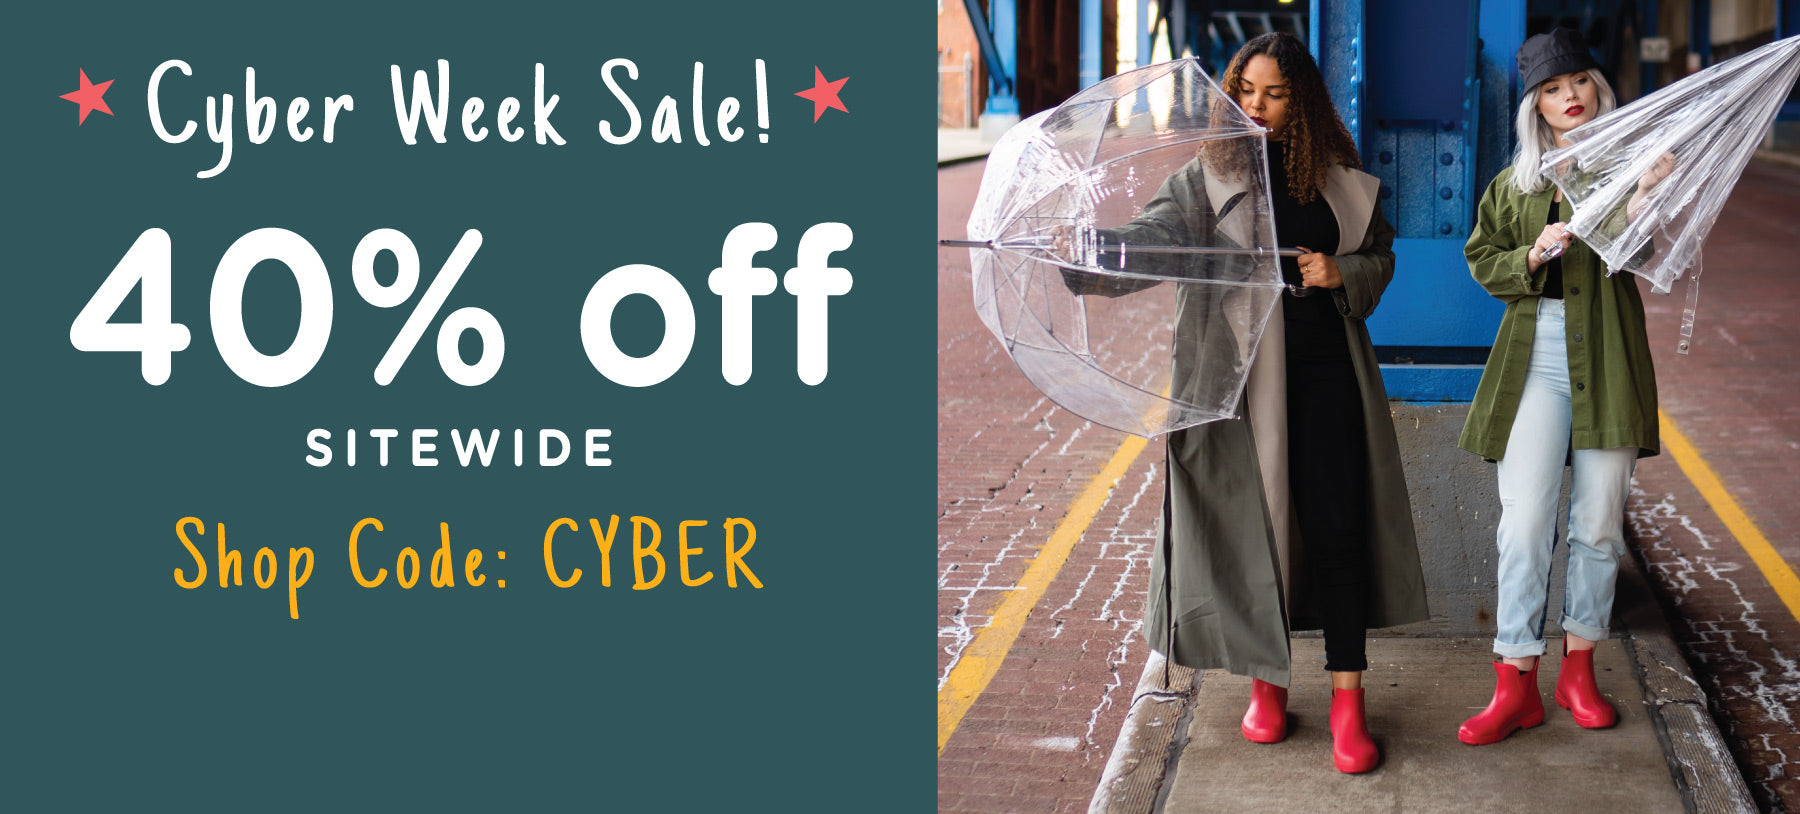 """Cyber Week Sale! 40% Off Sitewide Use Code CYBER"" on a dark green background with an image of two female models opening umbrellas and wearing red Cirrus Chelsea boots"